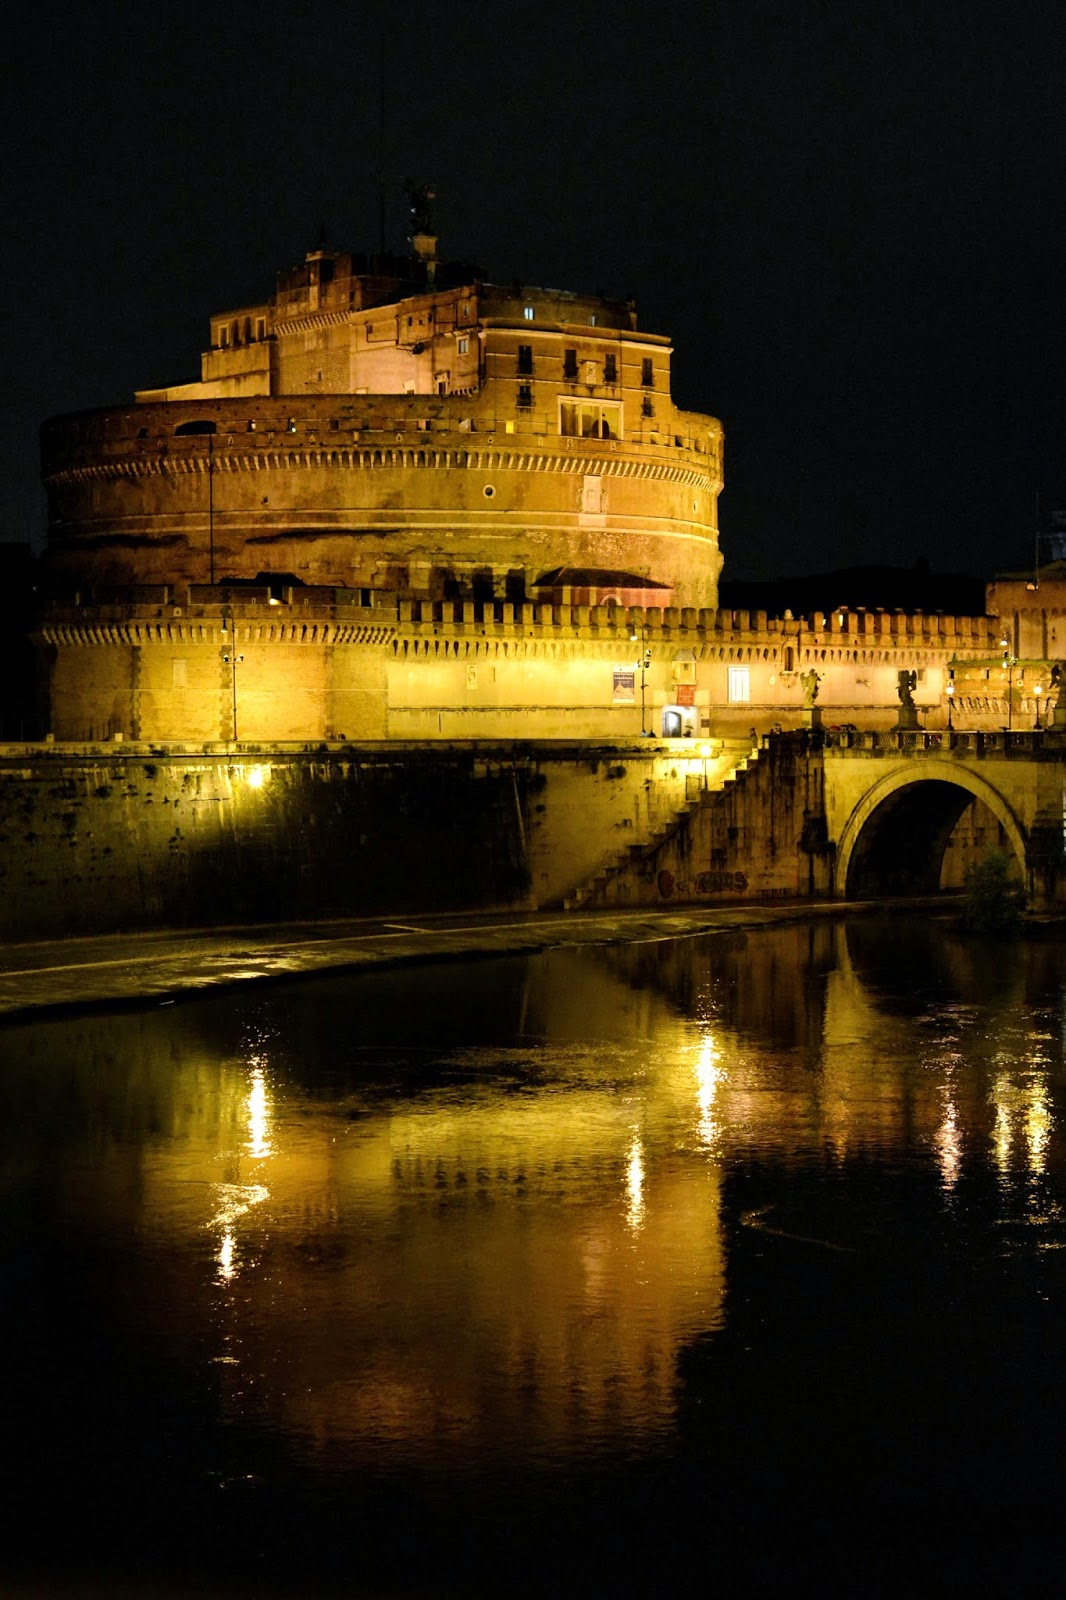 Night time photograph of Castel Sant'Angelo and the River Tiber